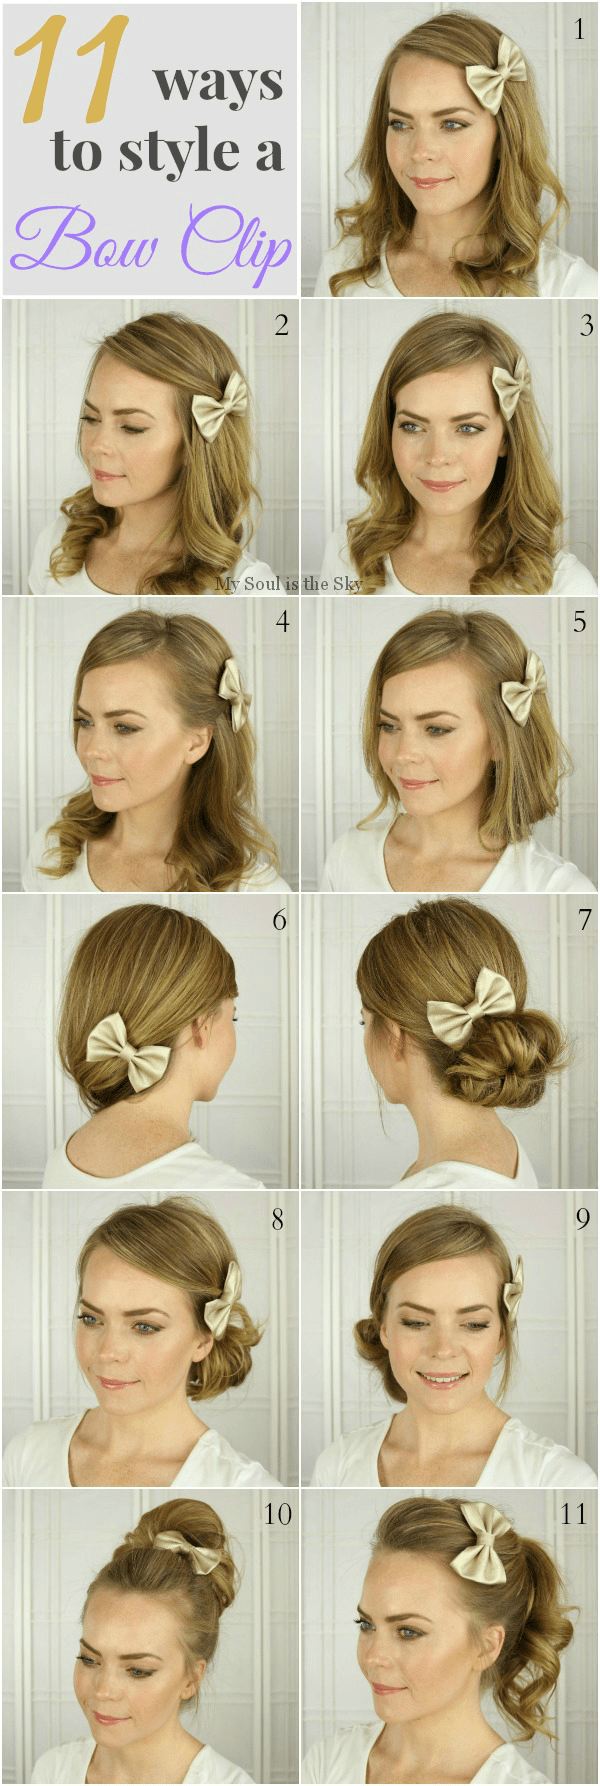 hairstyles with a bow 11 Hairstyles with a Bow